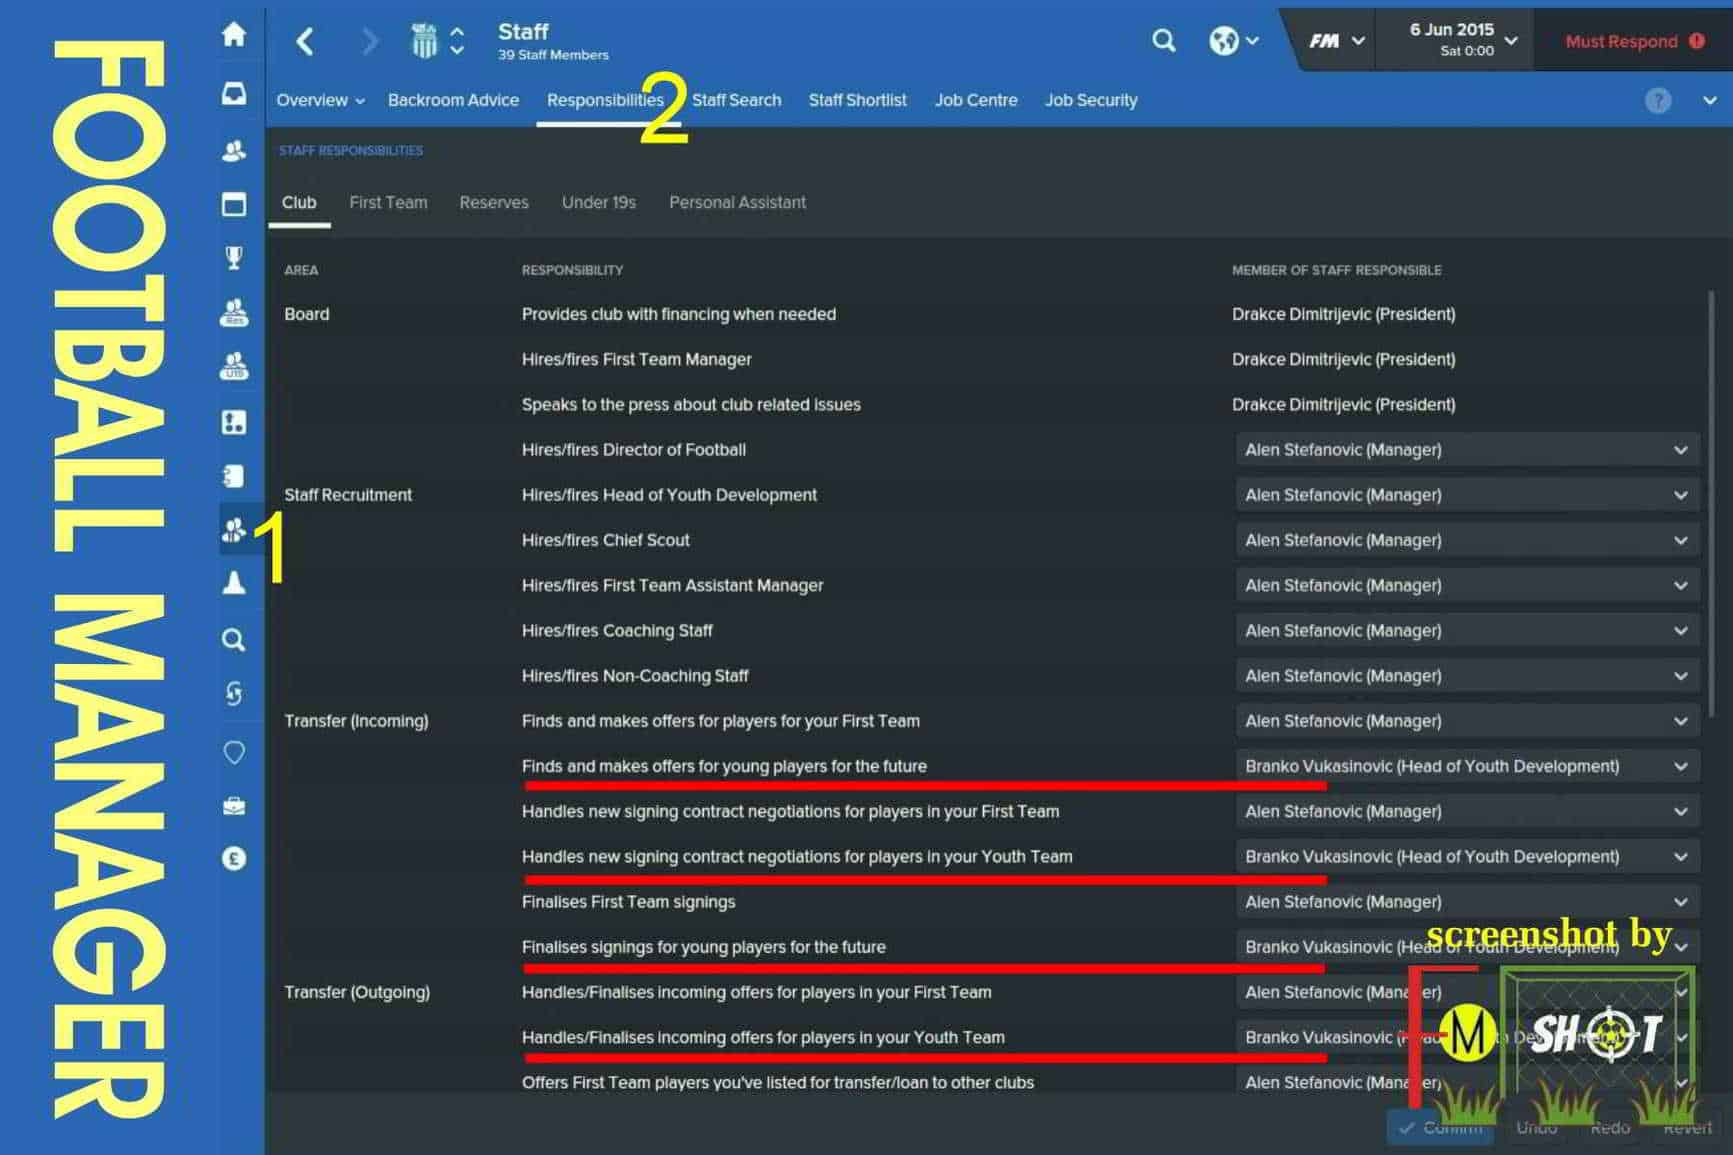 FM Responsibilities - Head of Youth Development